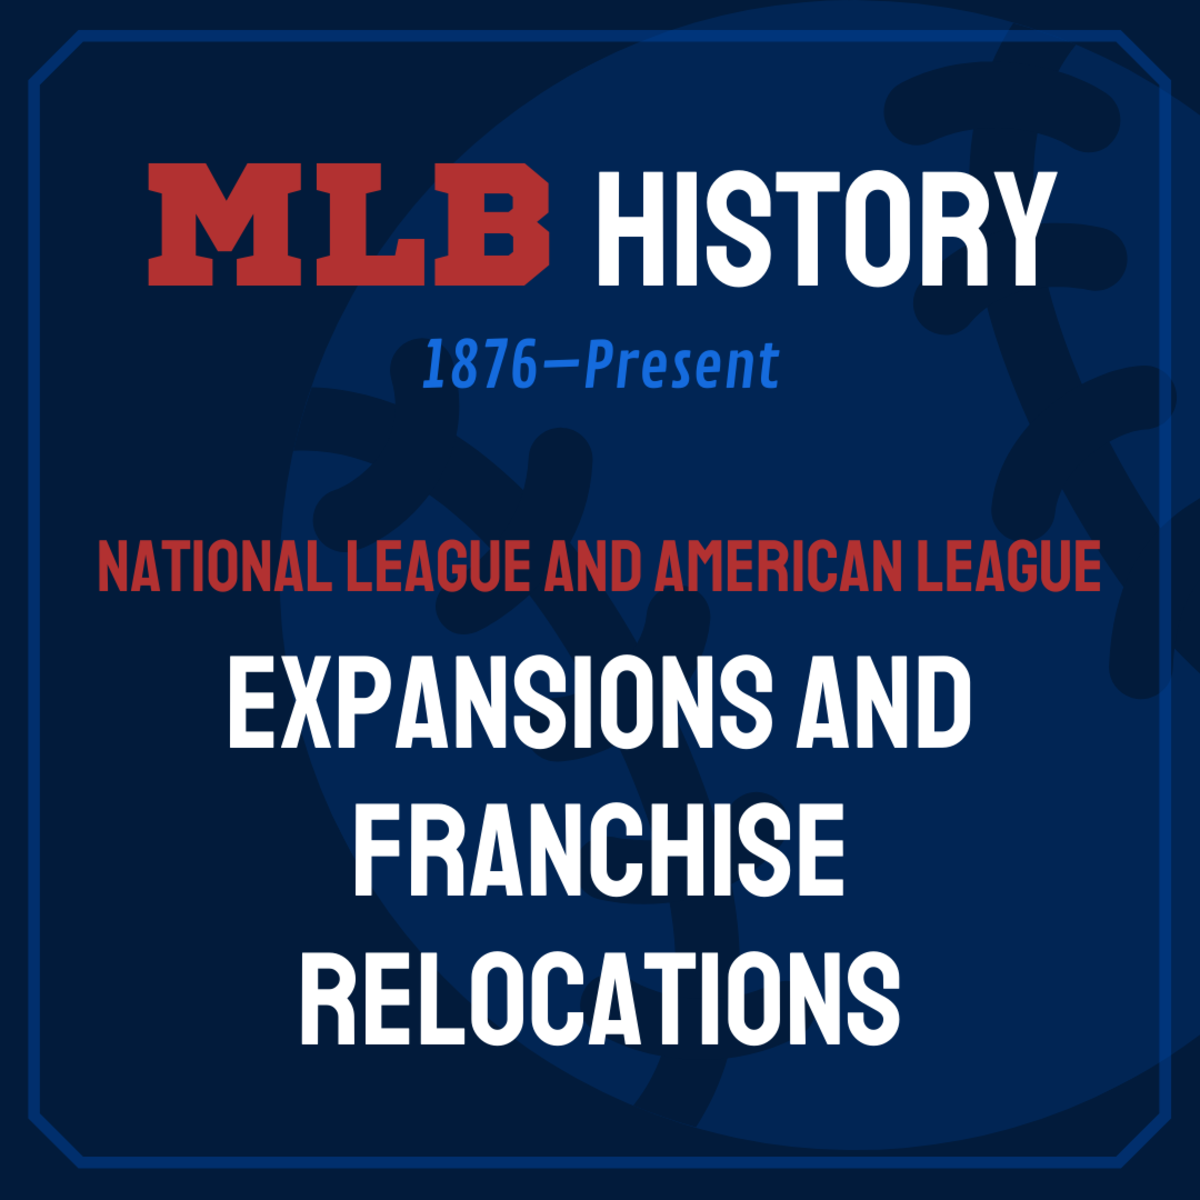 Review the history of Major League Baseball from pre-1900 to today, with a focus on when new teams joined the league and when franchises moved to new cities.